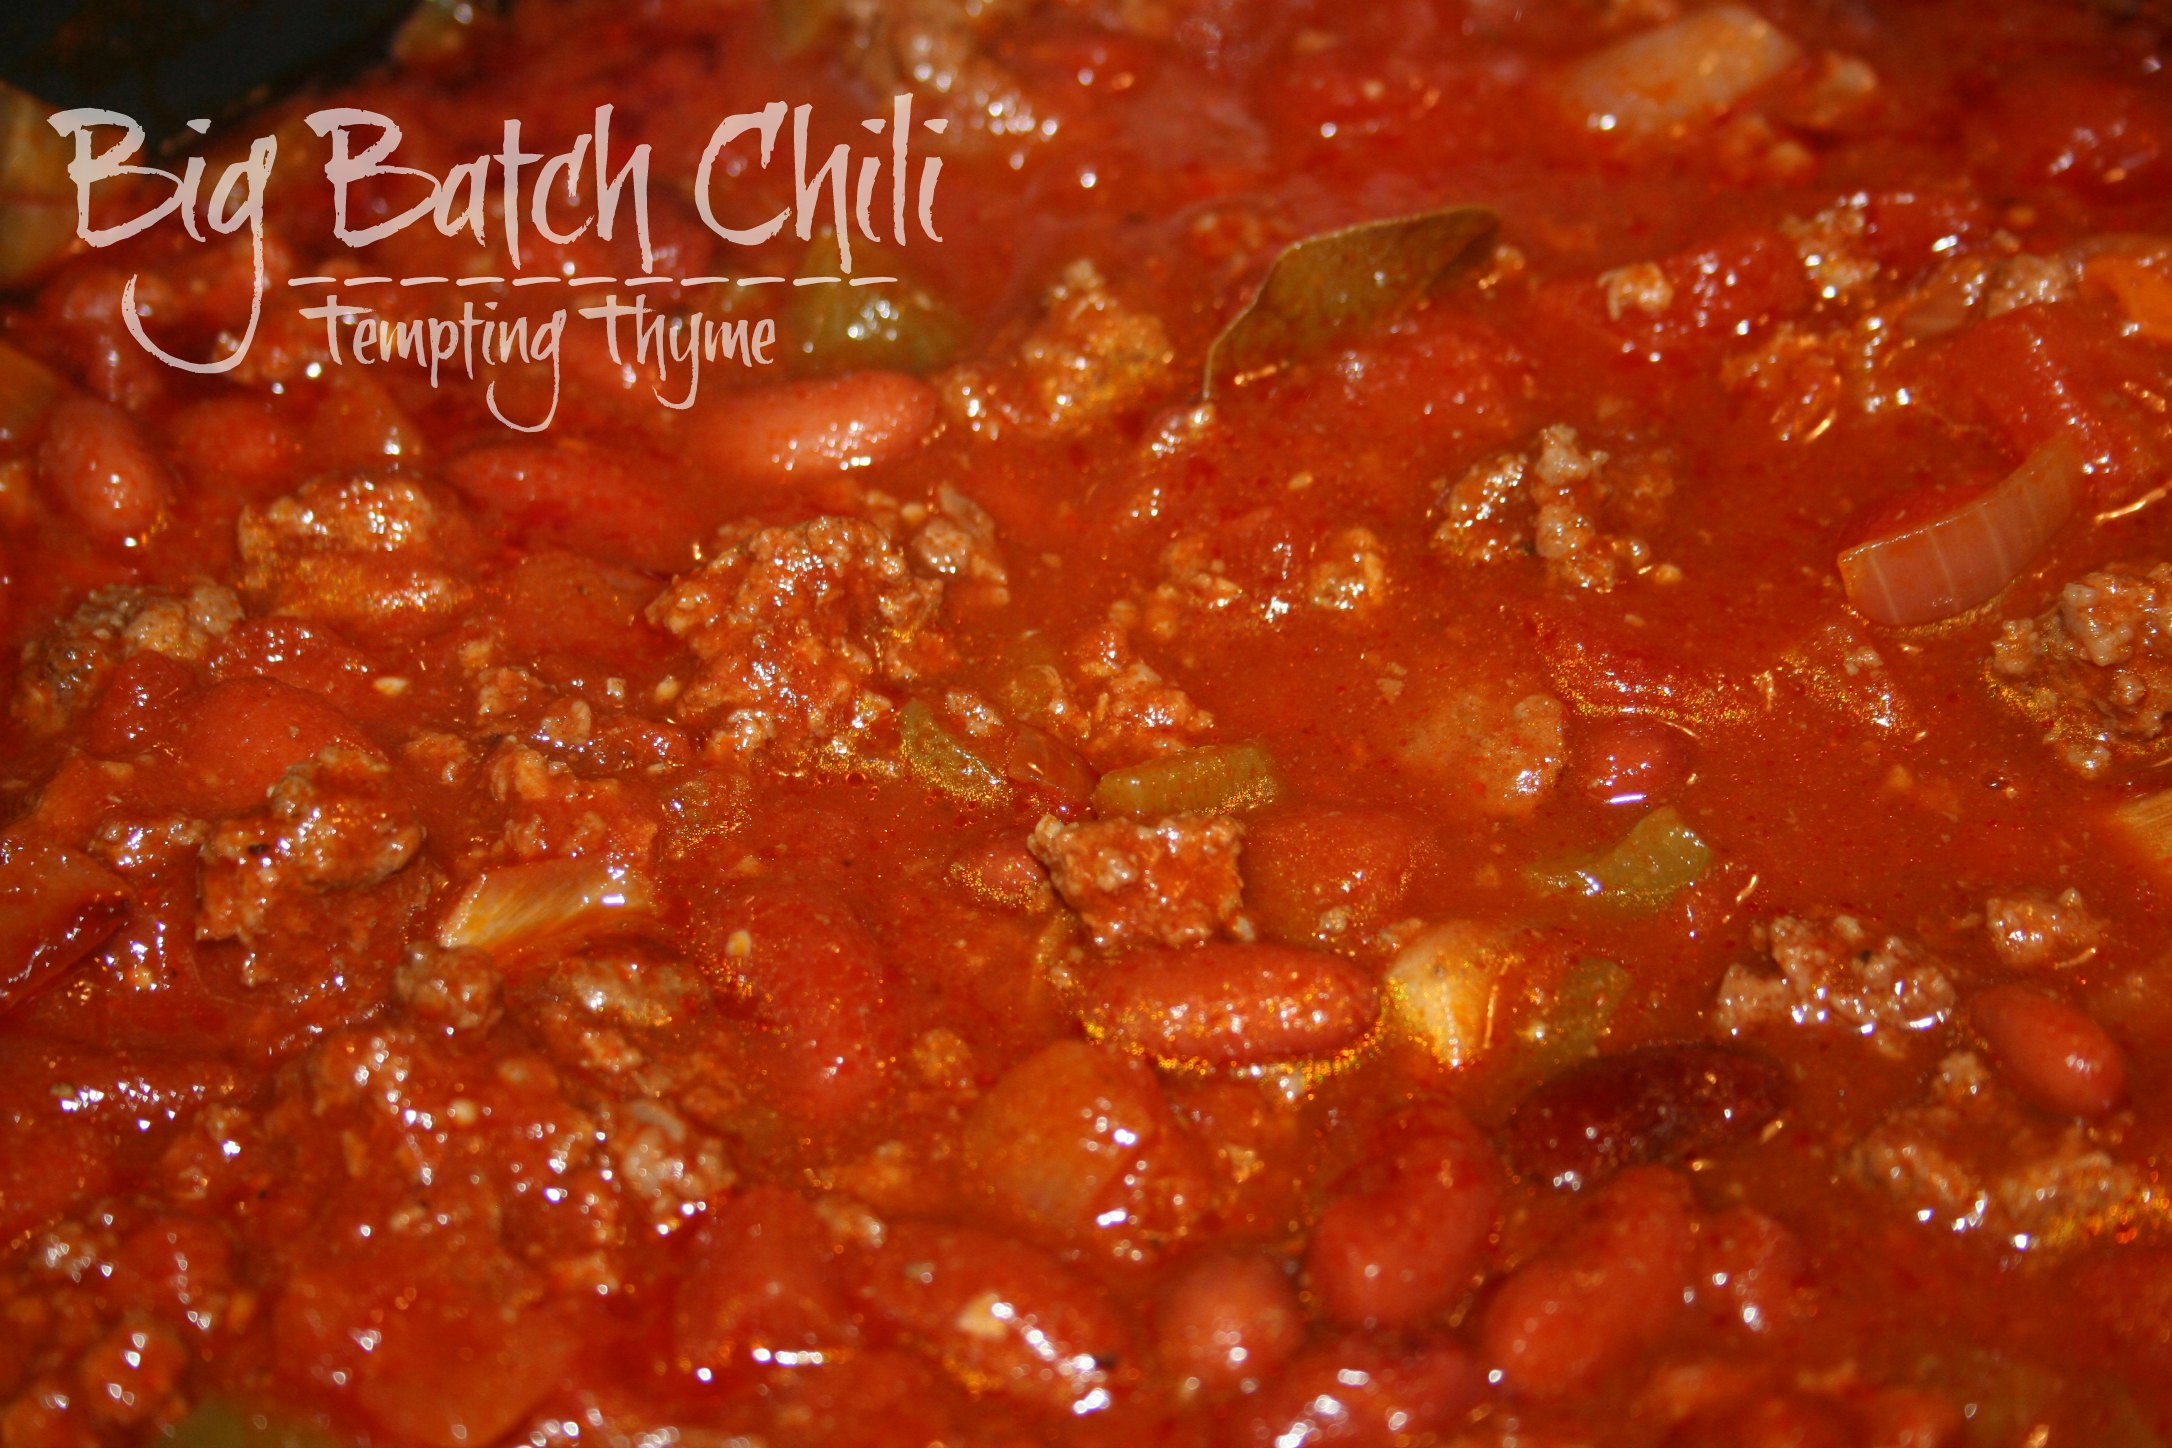 Tempting Thyme Big Batch Chili